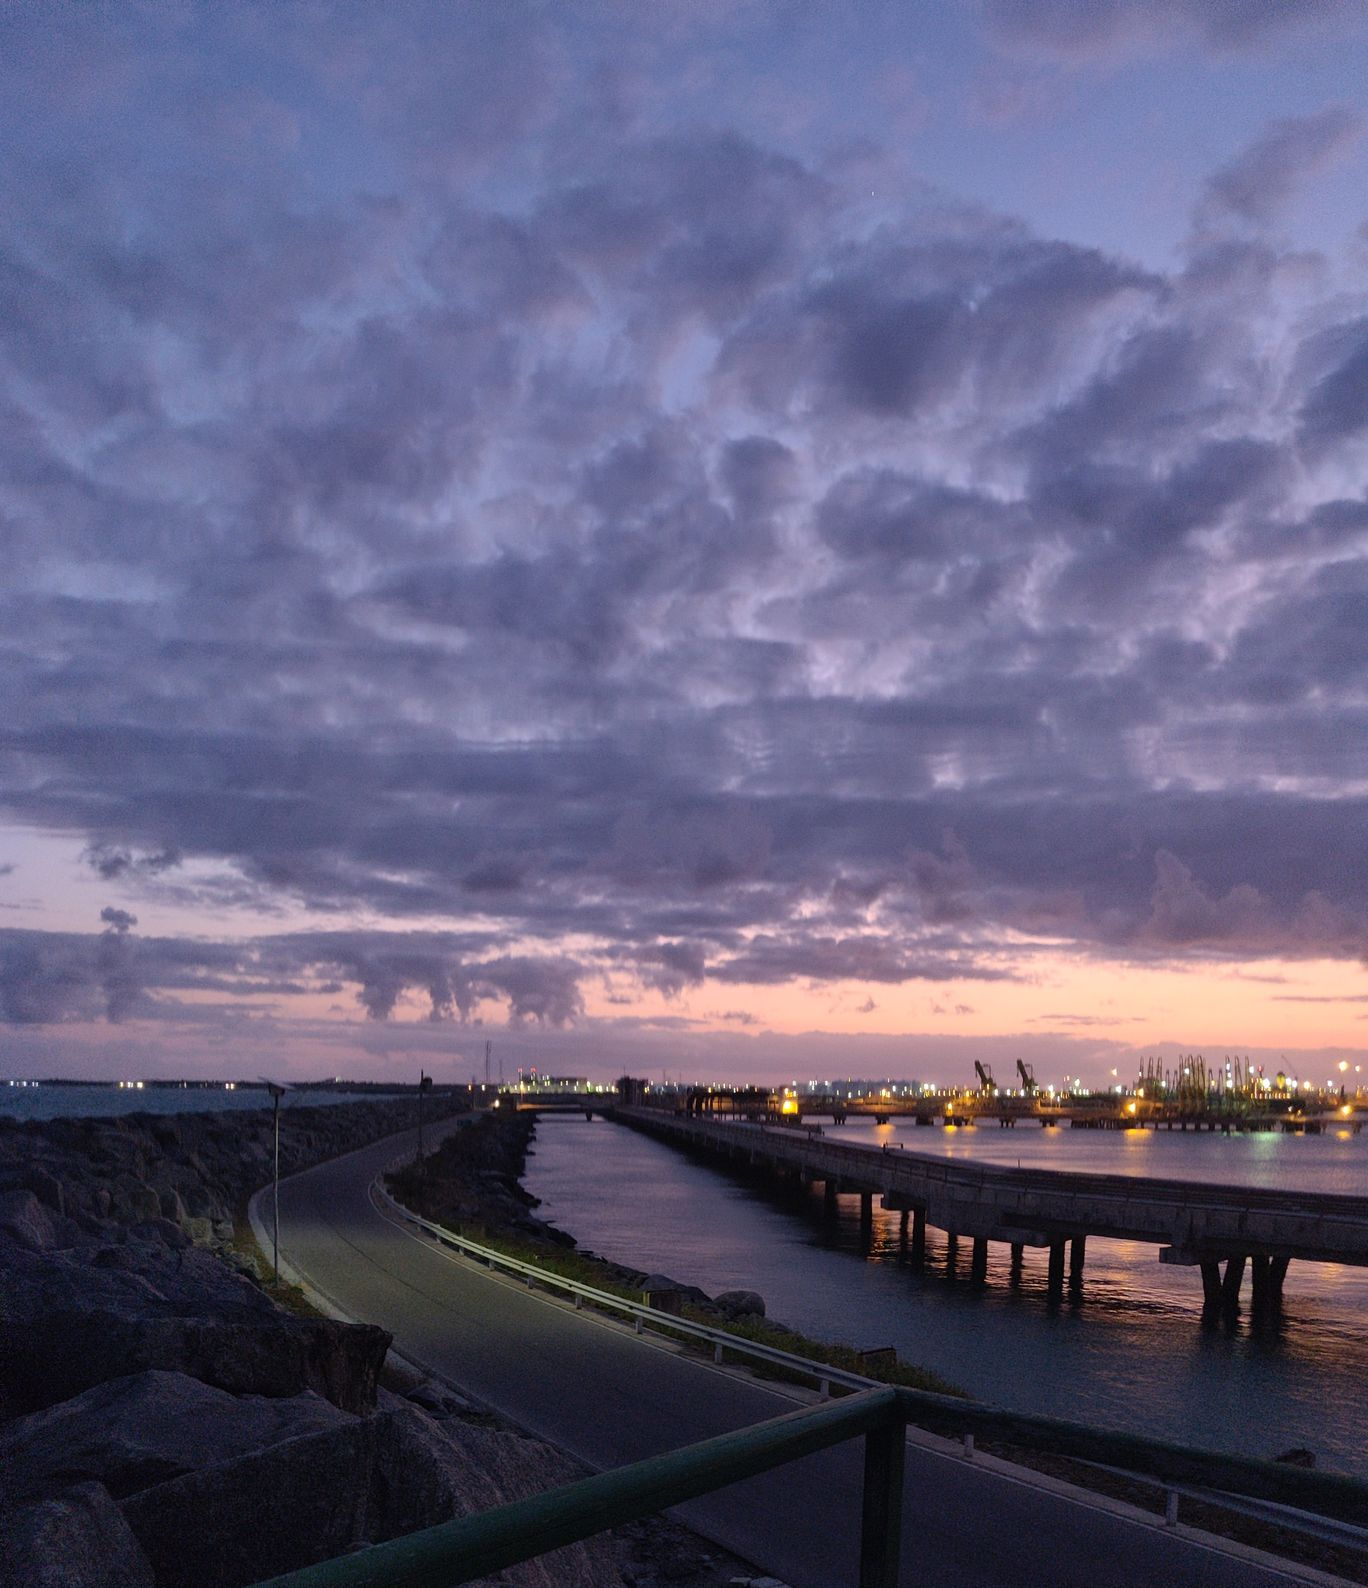 Photo of Port of Suape - Km 10 By Shobhit Saxena